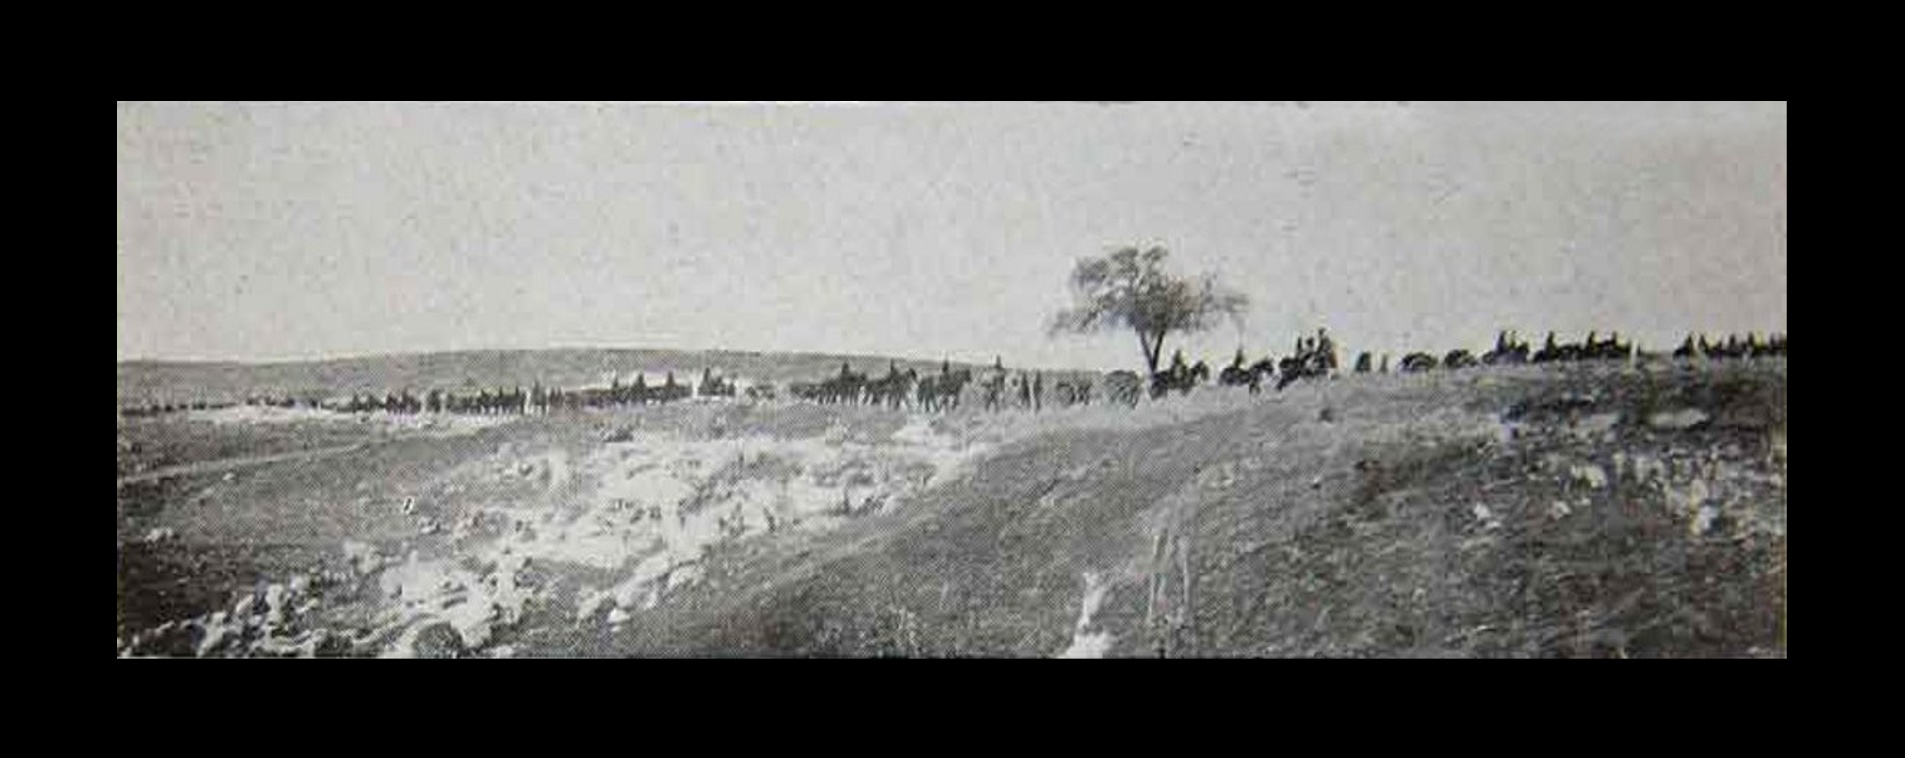 Ramallah - رام الله : Artillery of English West Country troops near Ramallah converging on Jerusalem from Gaza and Jaffa, 1918 (The start of the accursed Mandate)